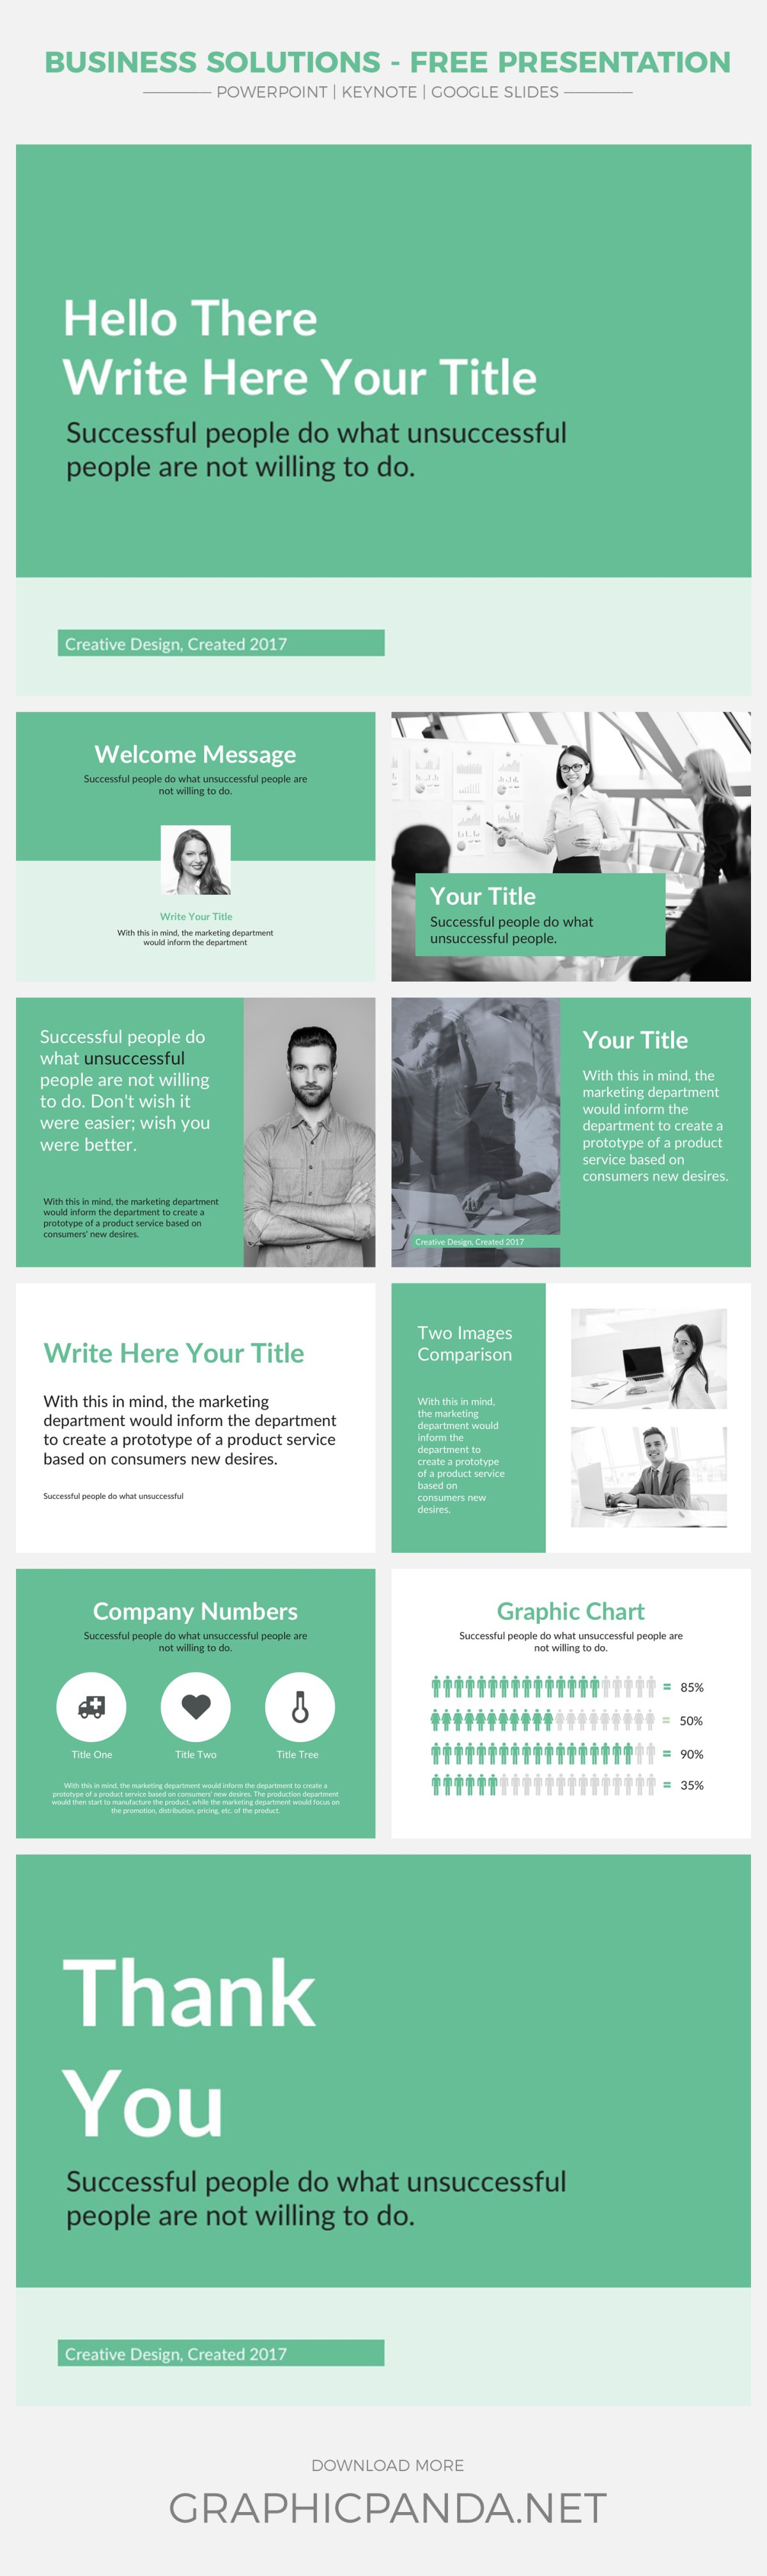 success powerpoint templates free download image